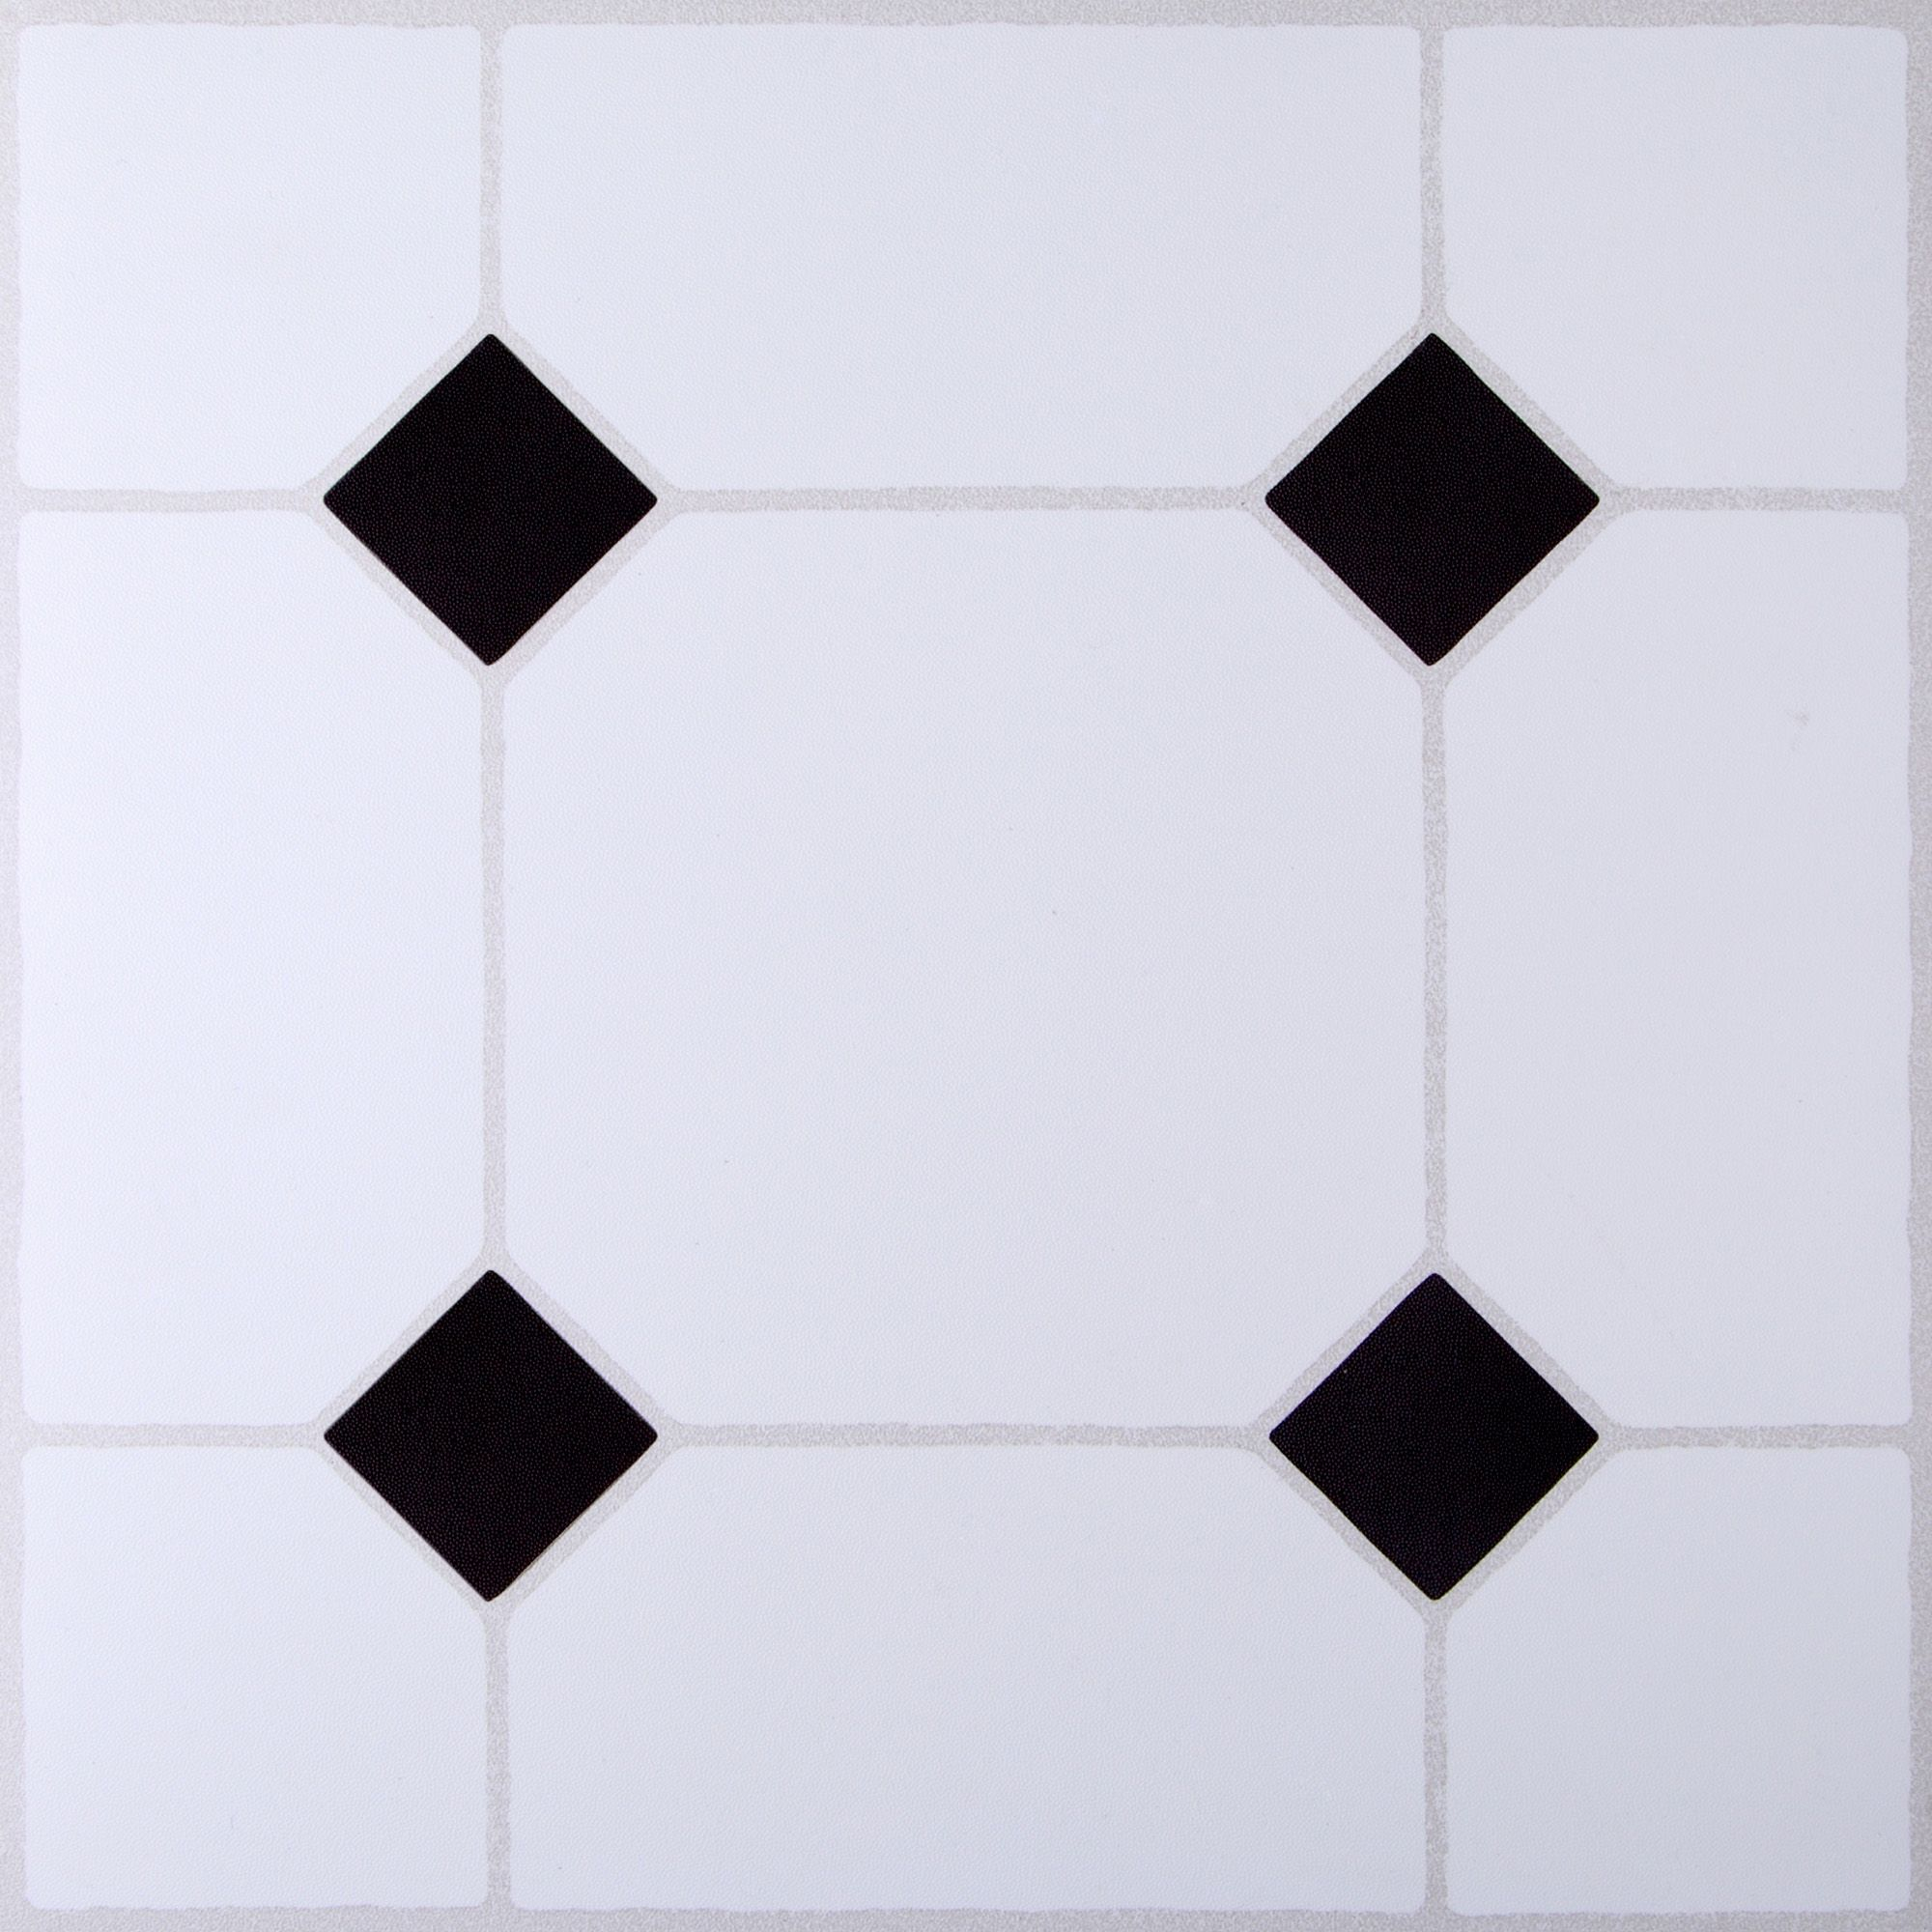 Bq black white tile effect self adhesive vinyl tile 102m pack bq black white tile effect self adhesive vinyl tile 102m pack departments diy at bq dailygadgetfo Images